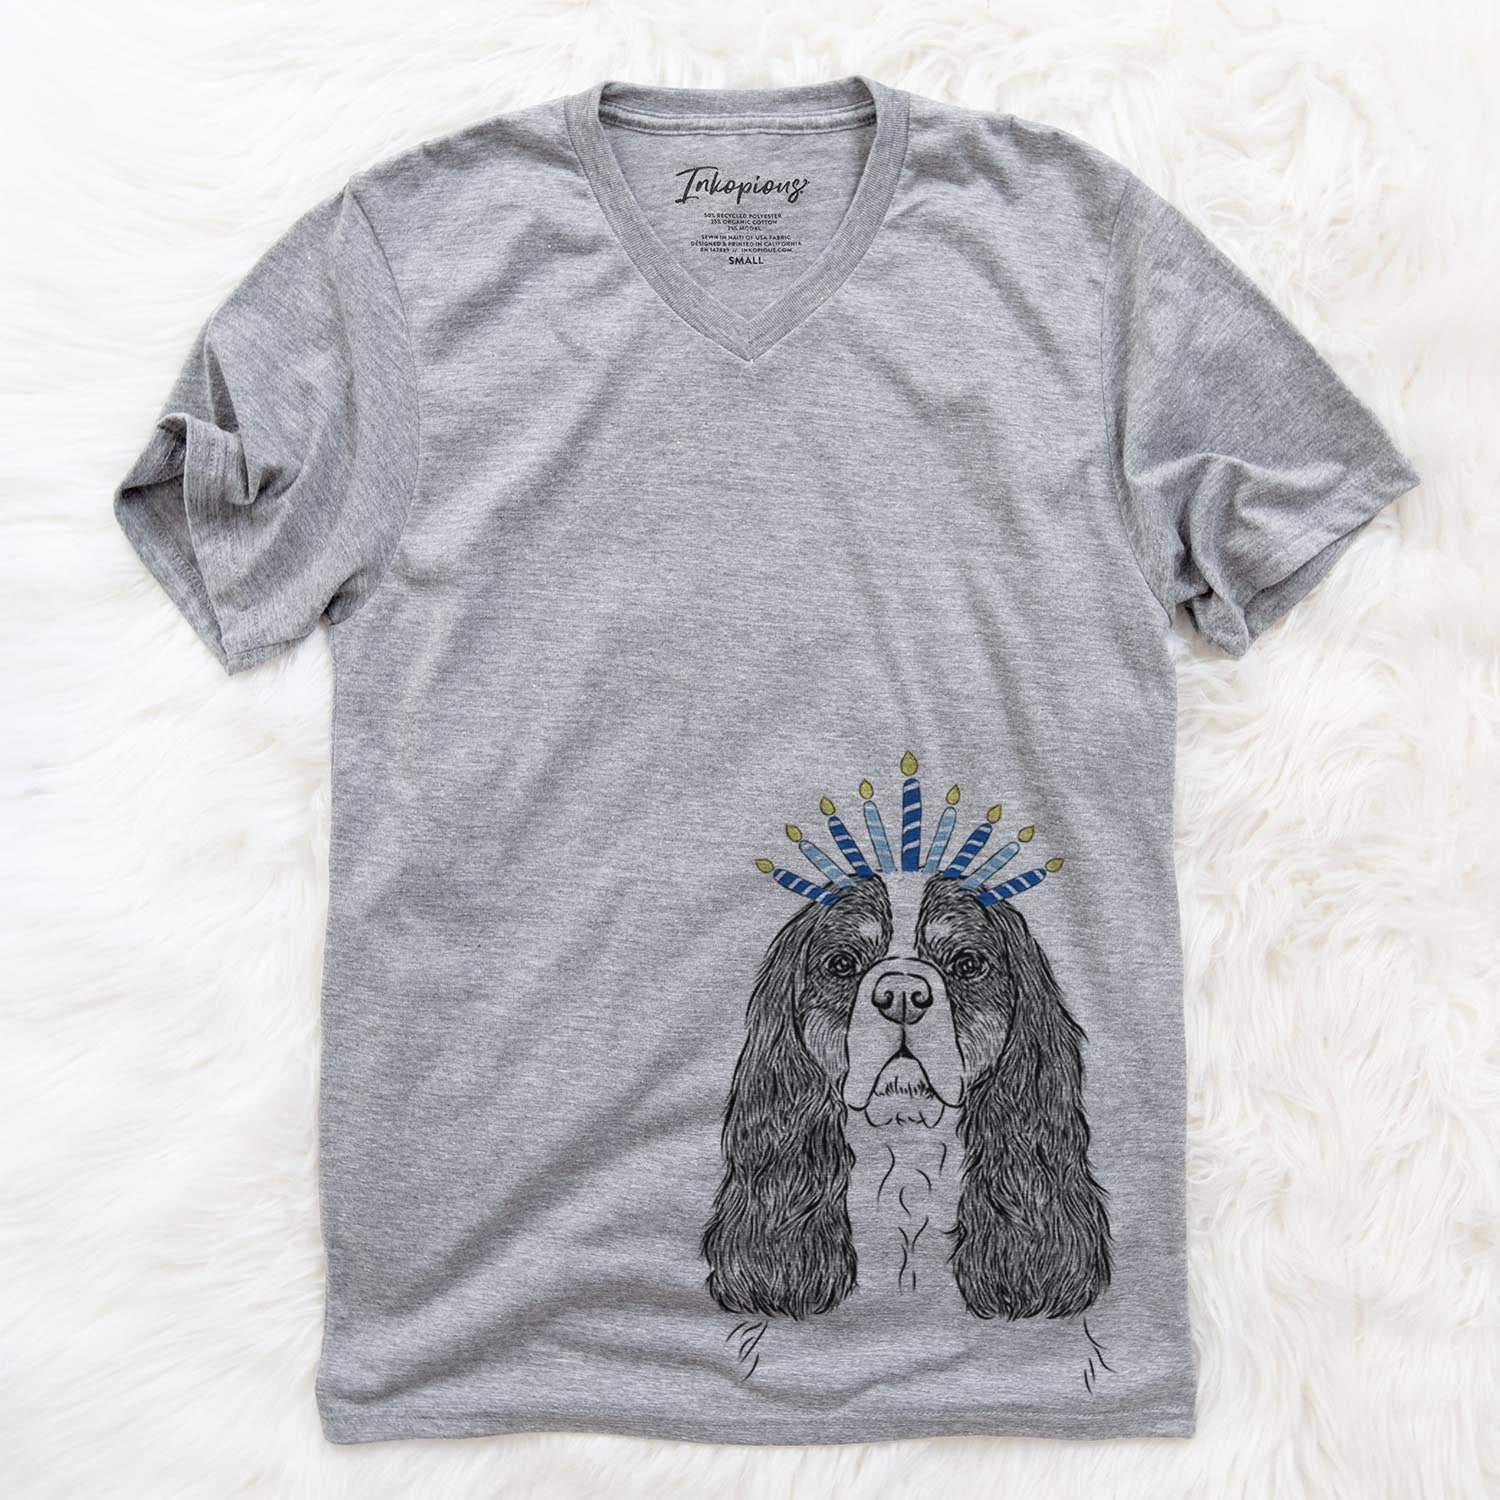 Sebastian the Cavalier King Charles Spaniel  - Hanukkah Collection